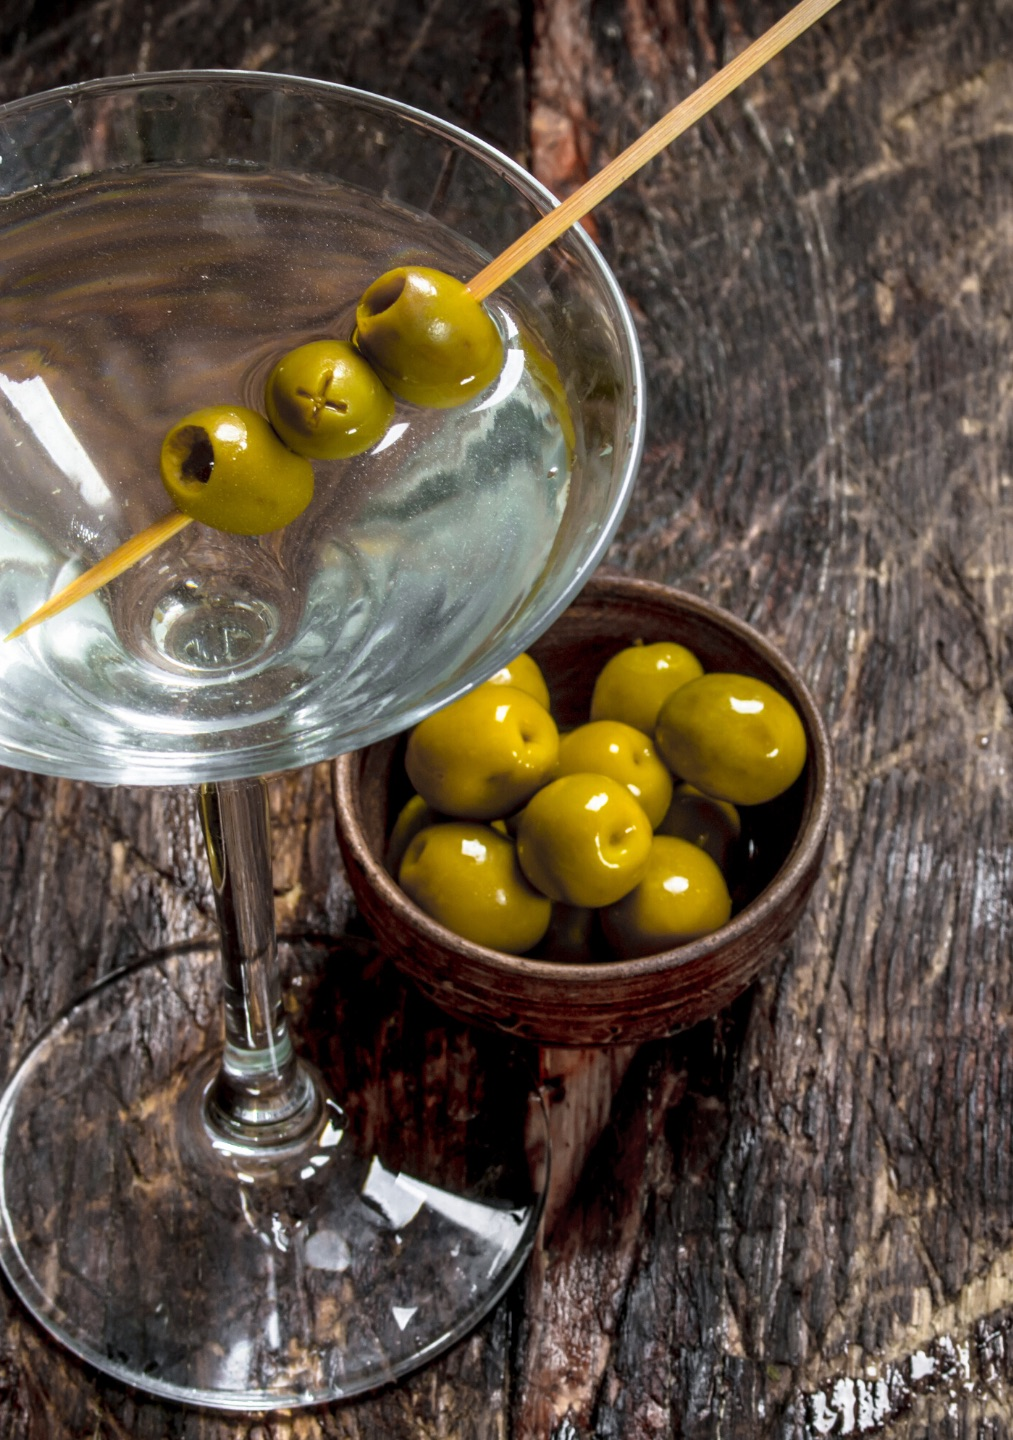 A Martini cocktail with three olives